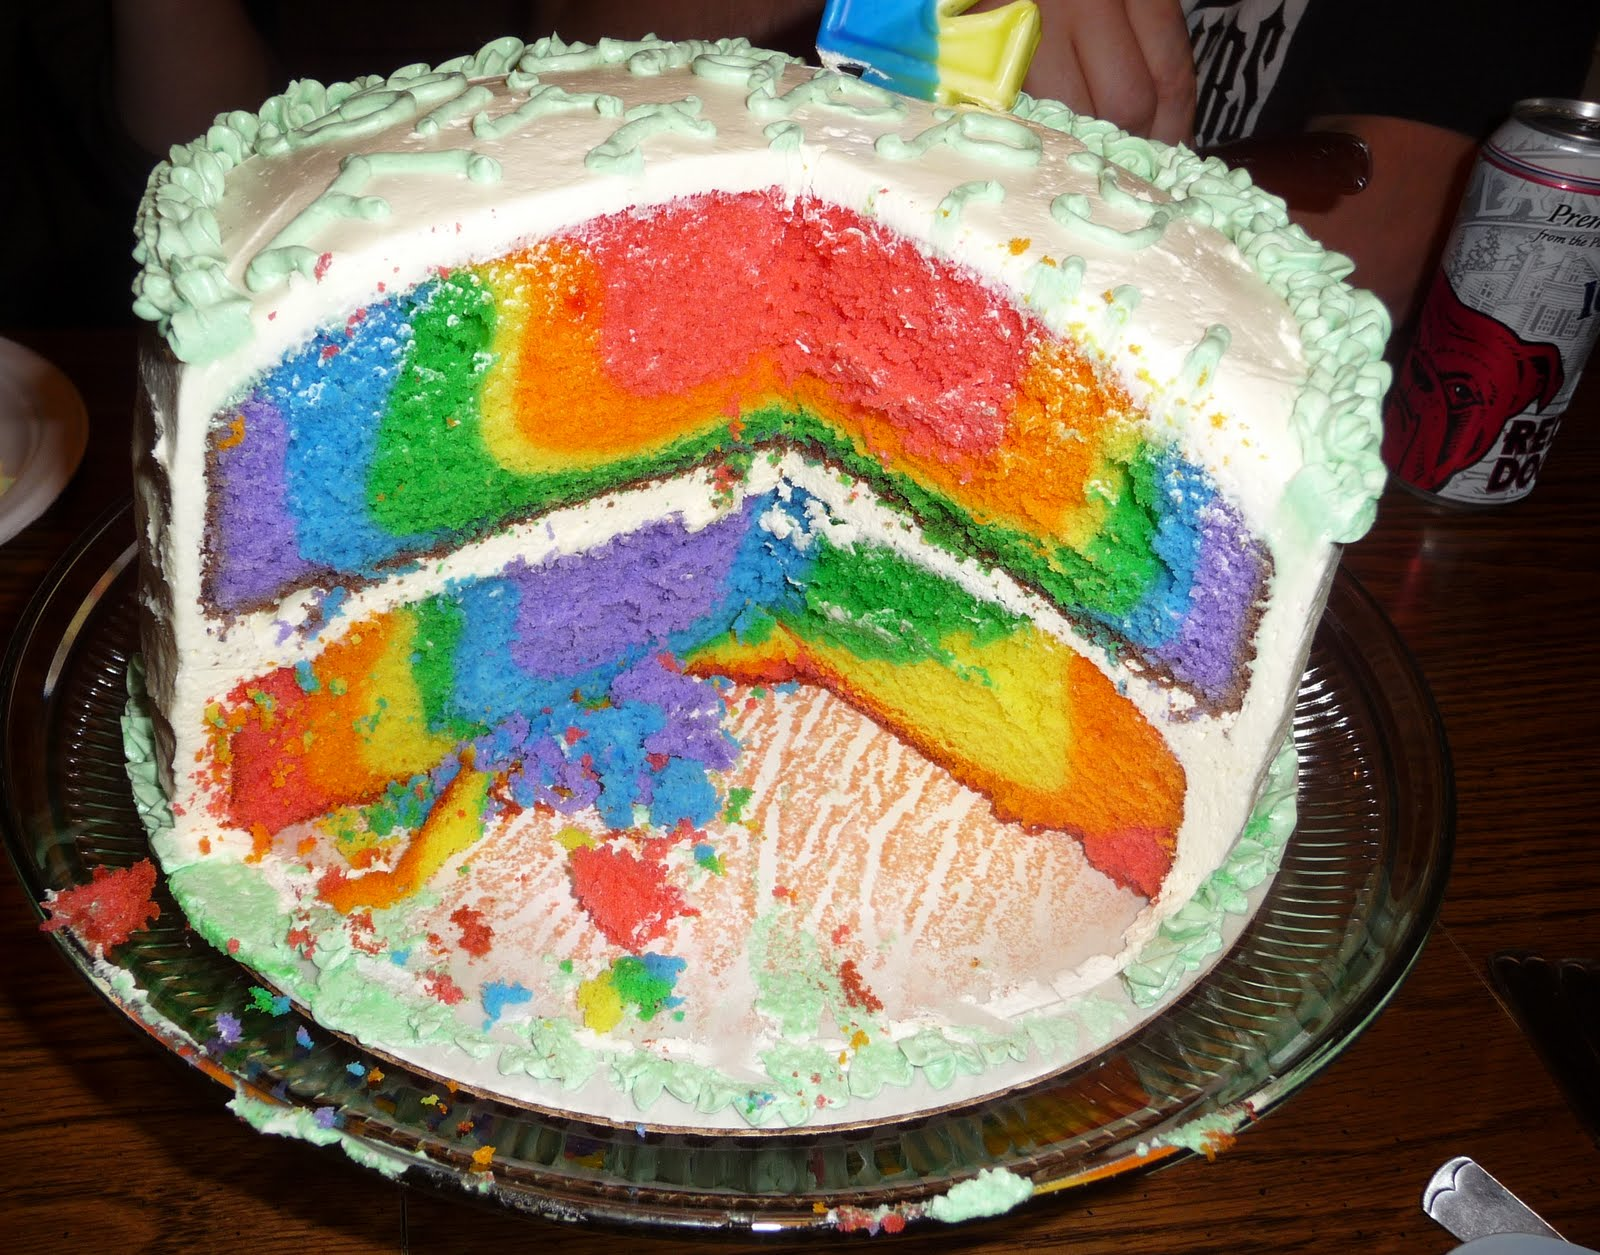 Cake Recipes Rainbow: Christine's Cuisine: Rainbow Cake